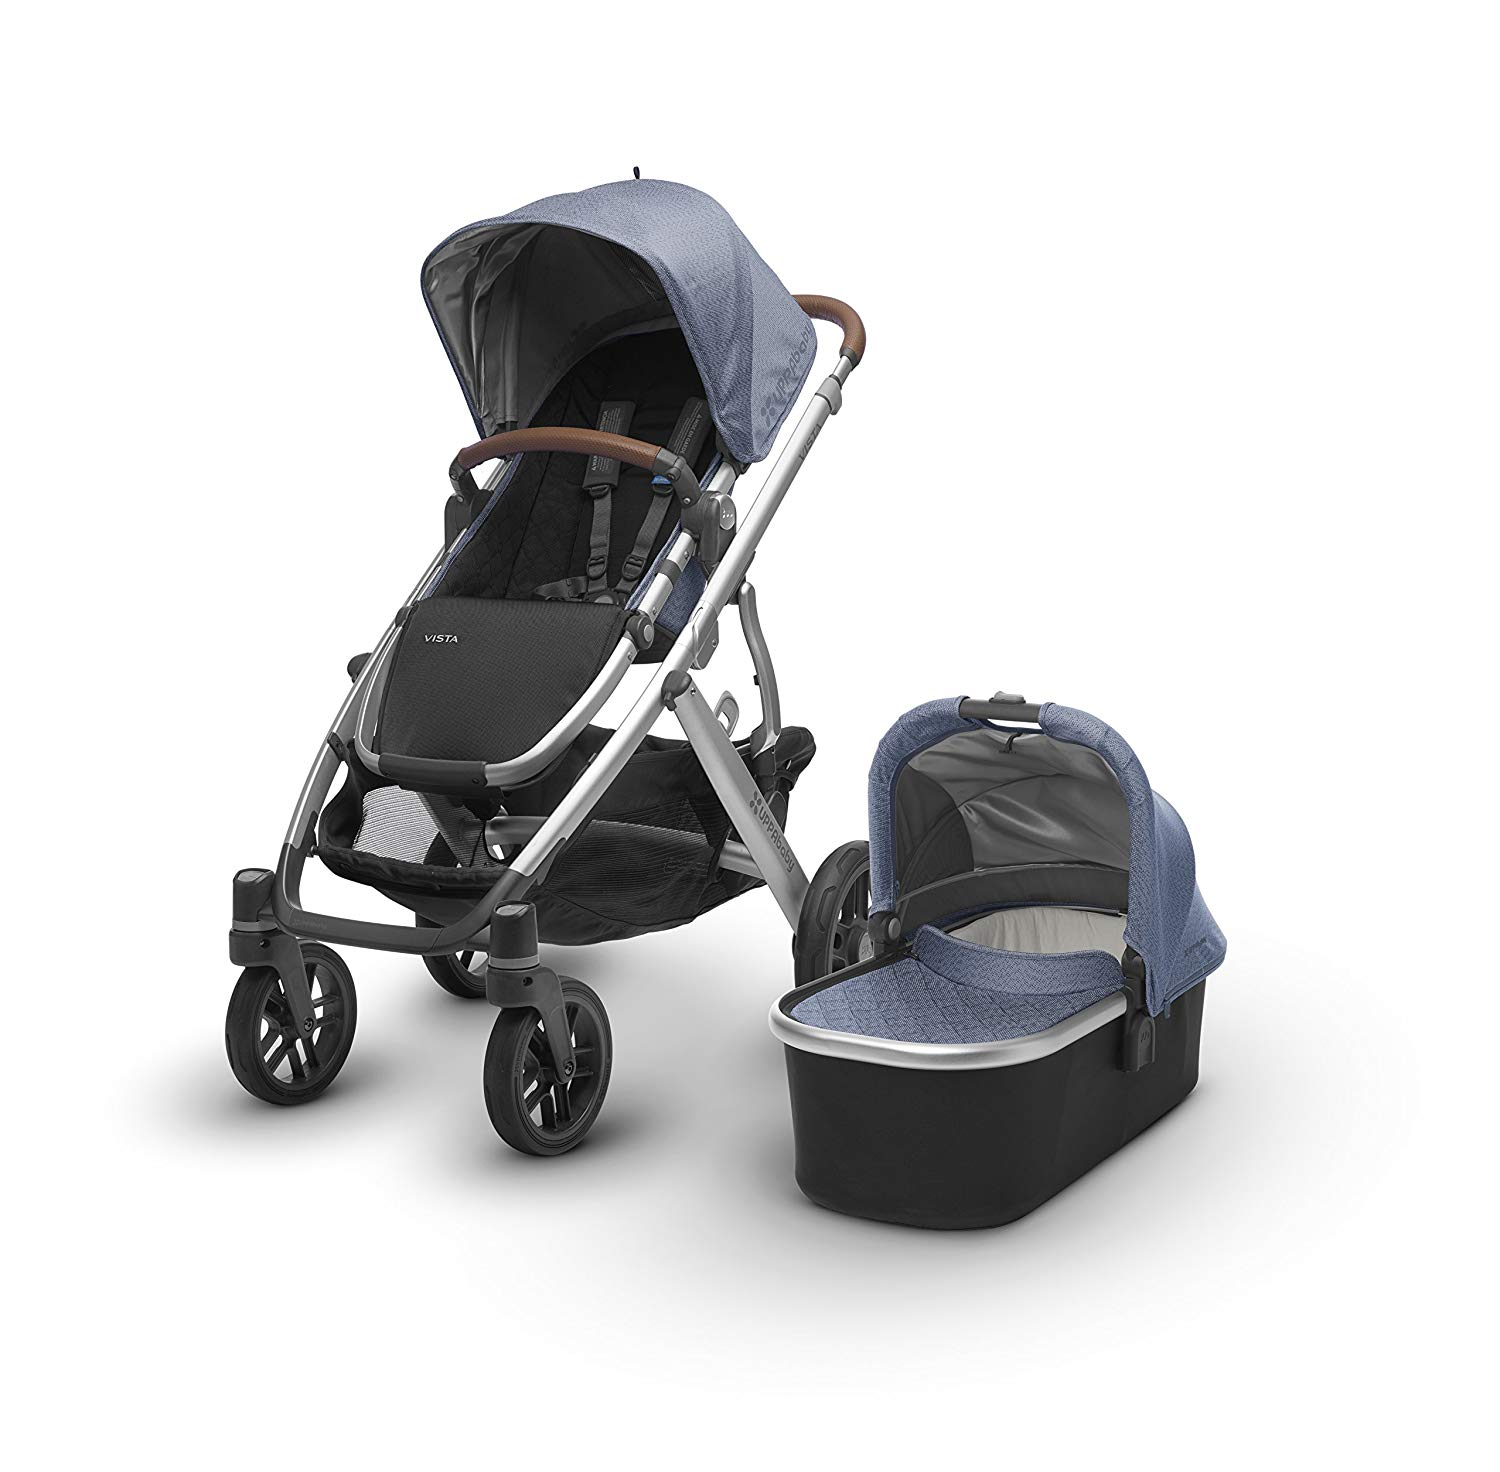 The UPPAbaby Vista Stroller is compatible with MESA Infant Car Seat.